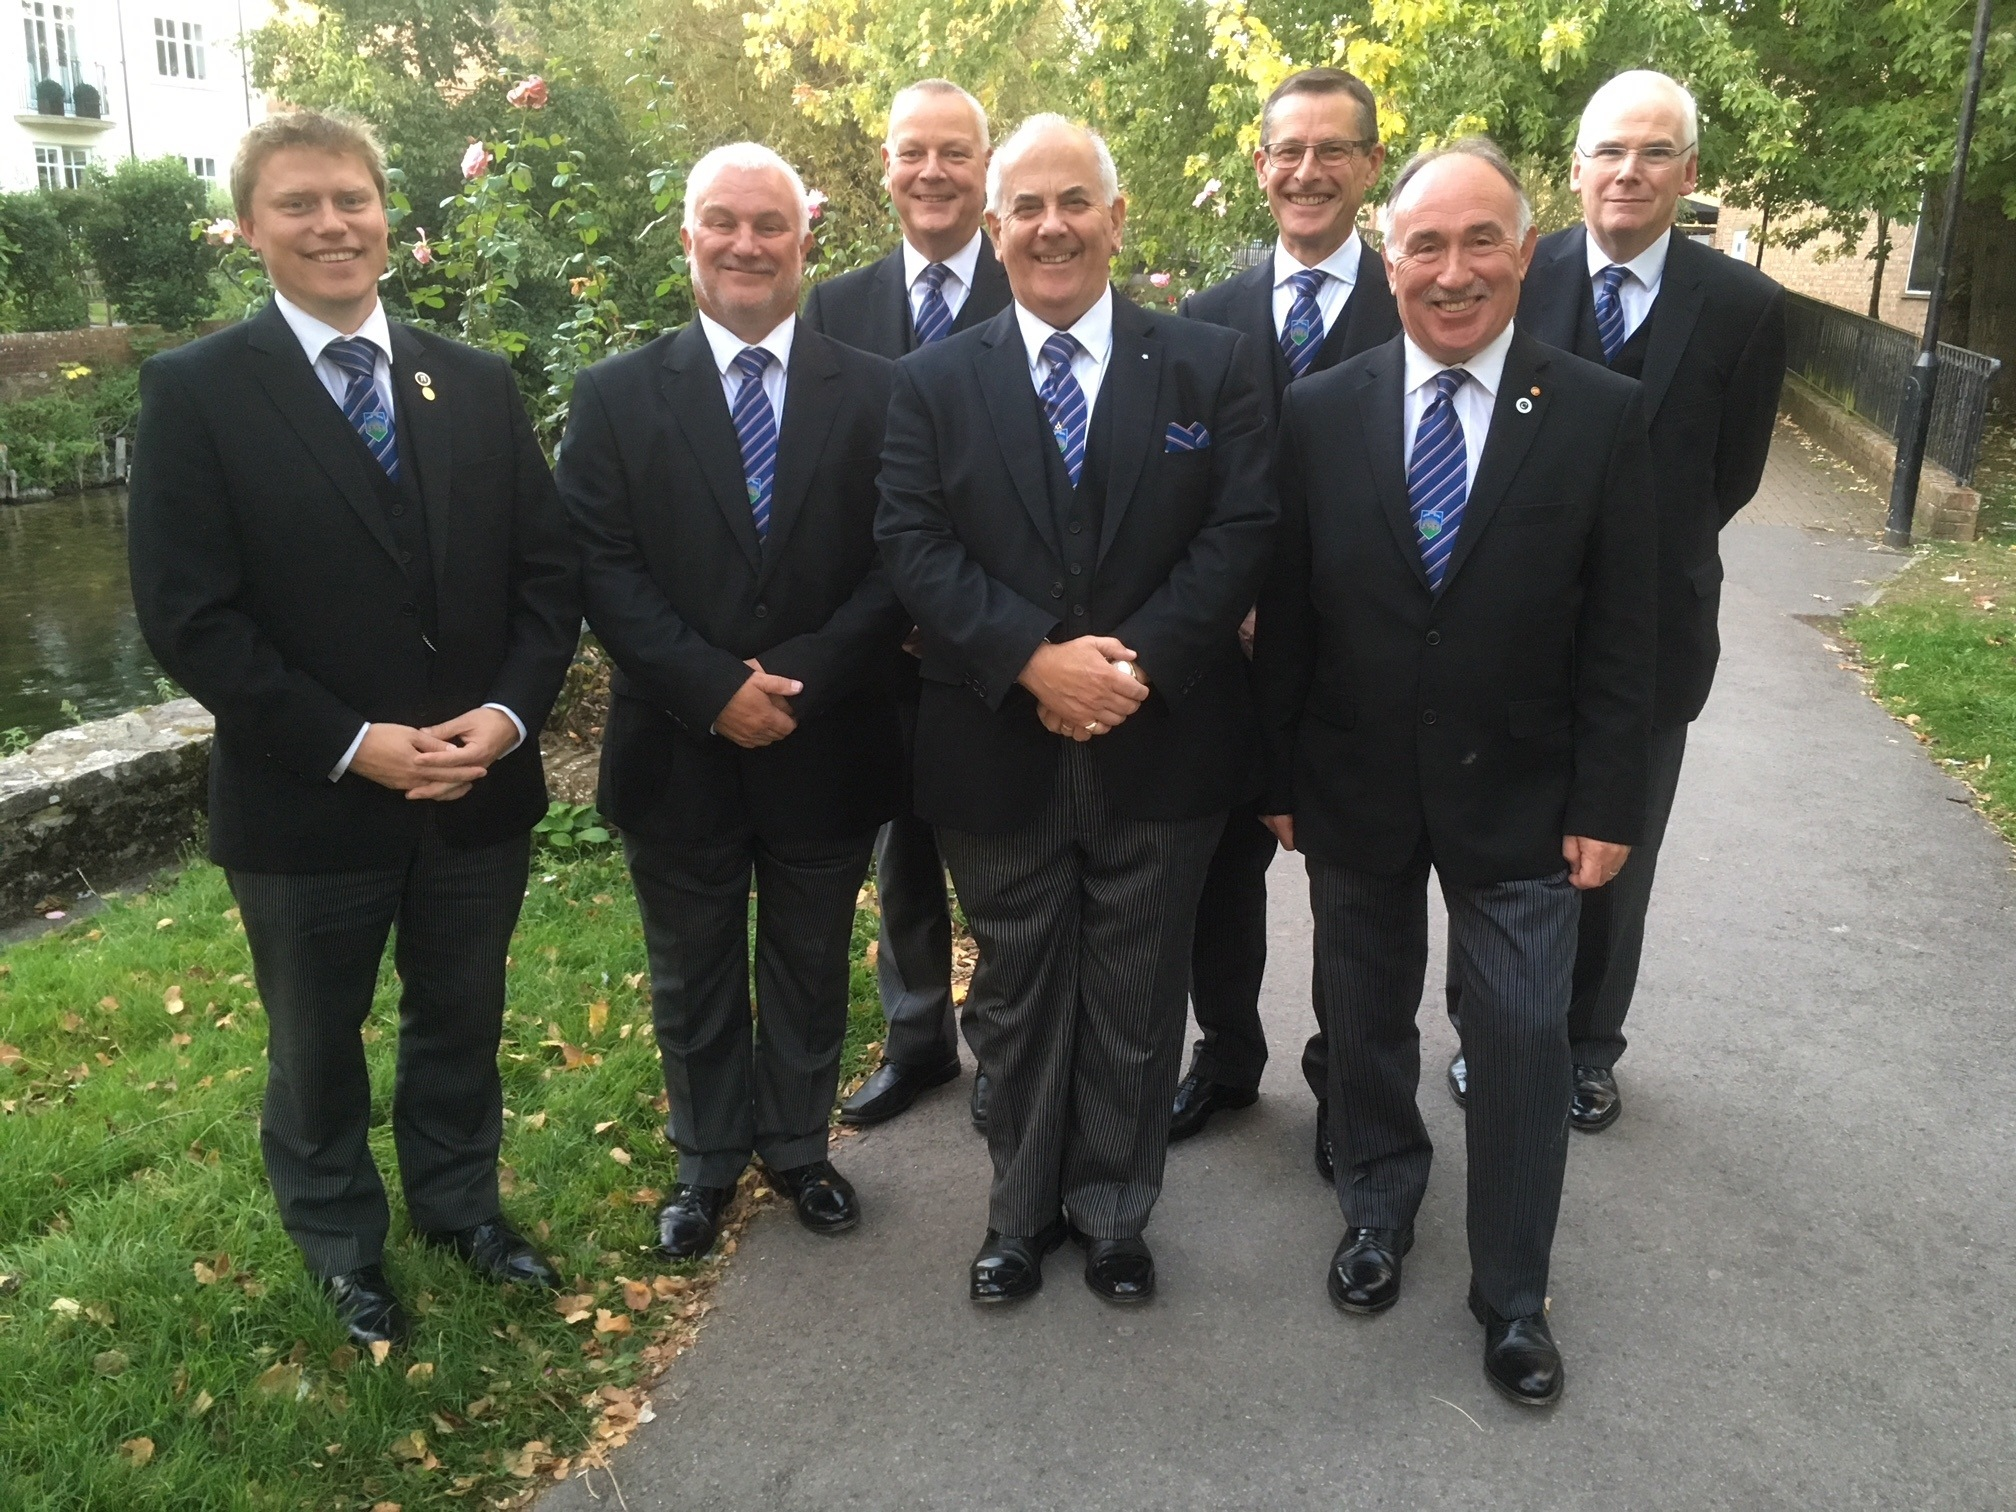 PGL Team Sarum Lodge 2018.JPG